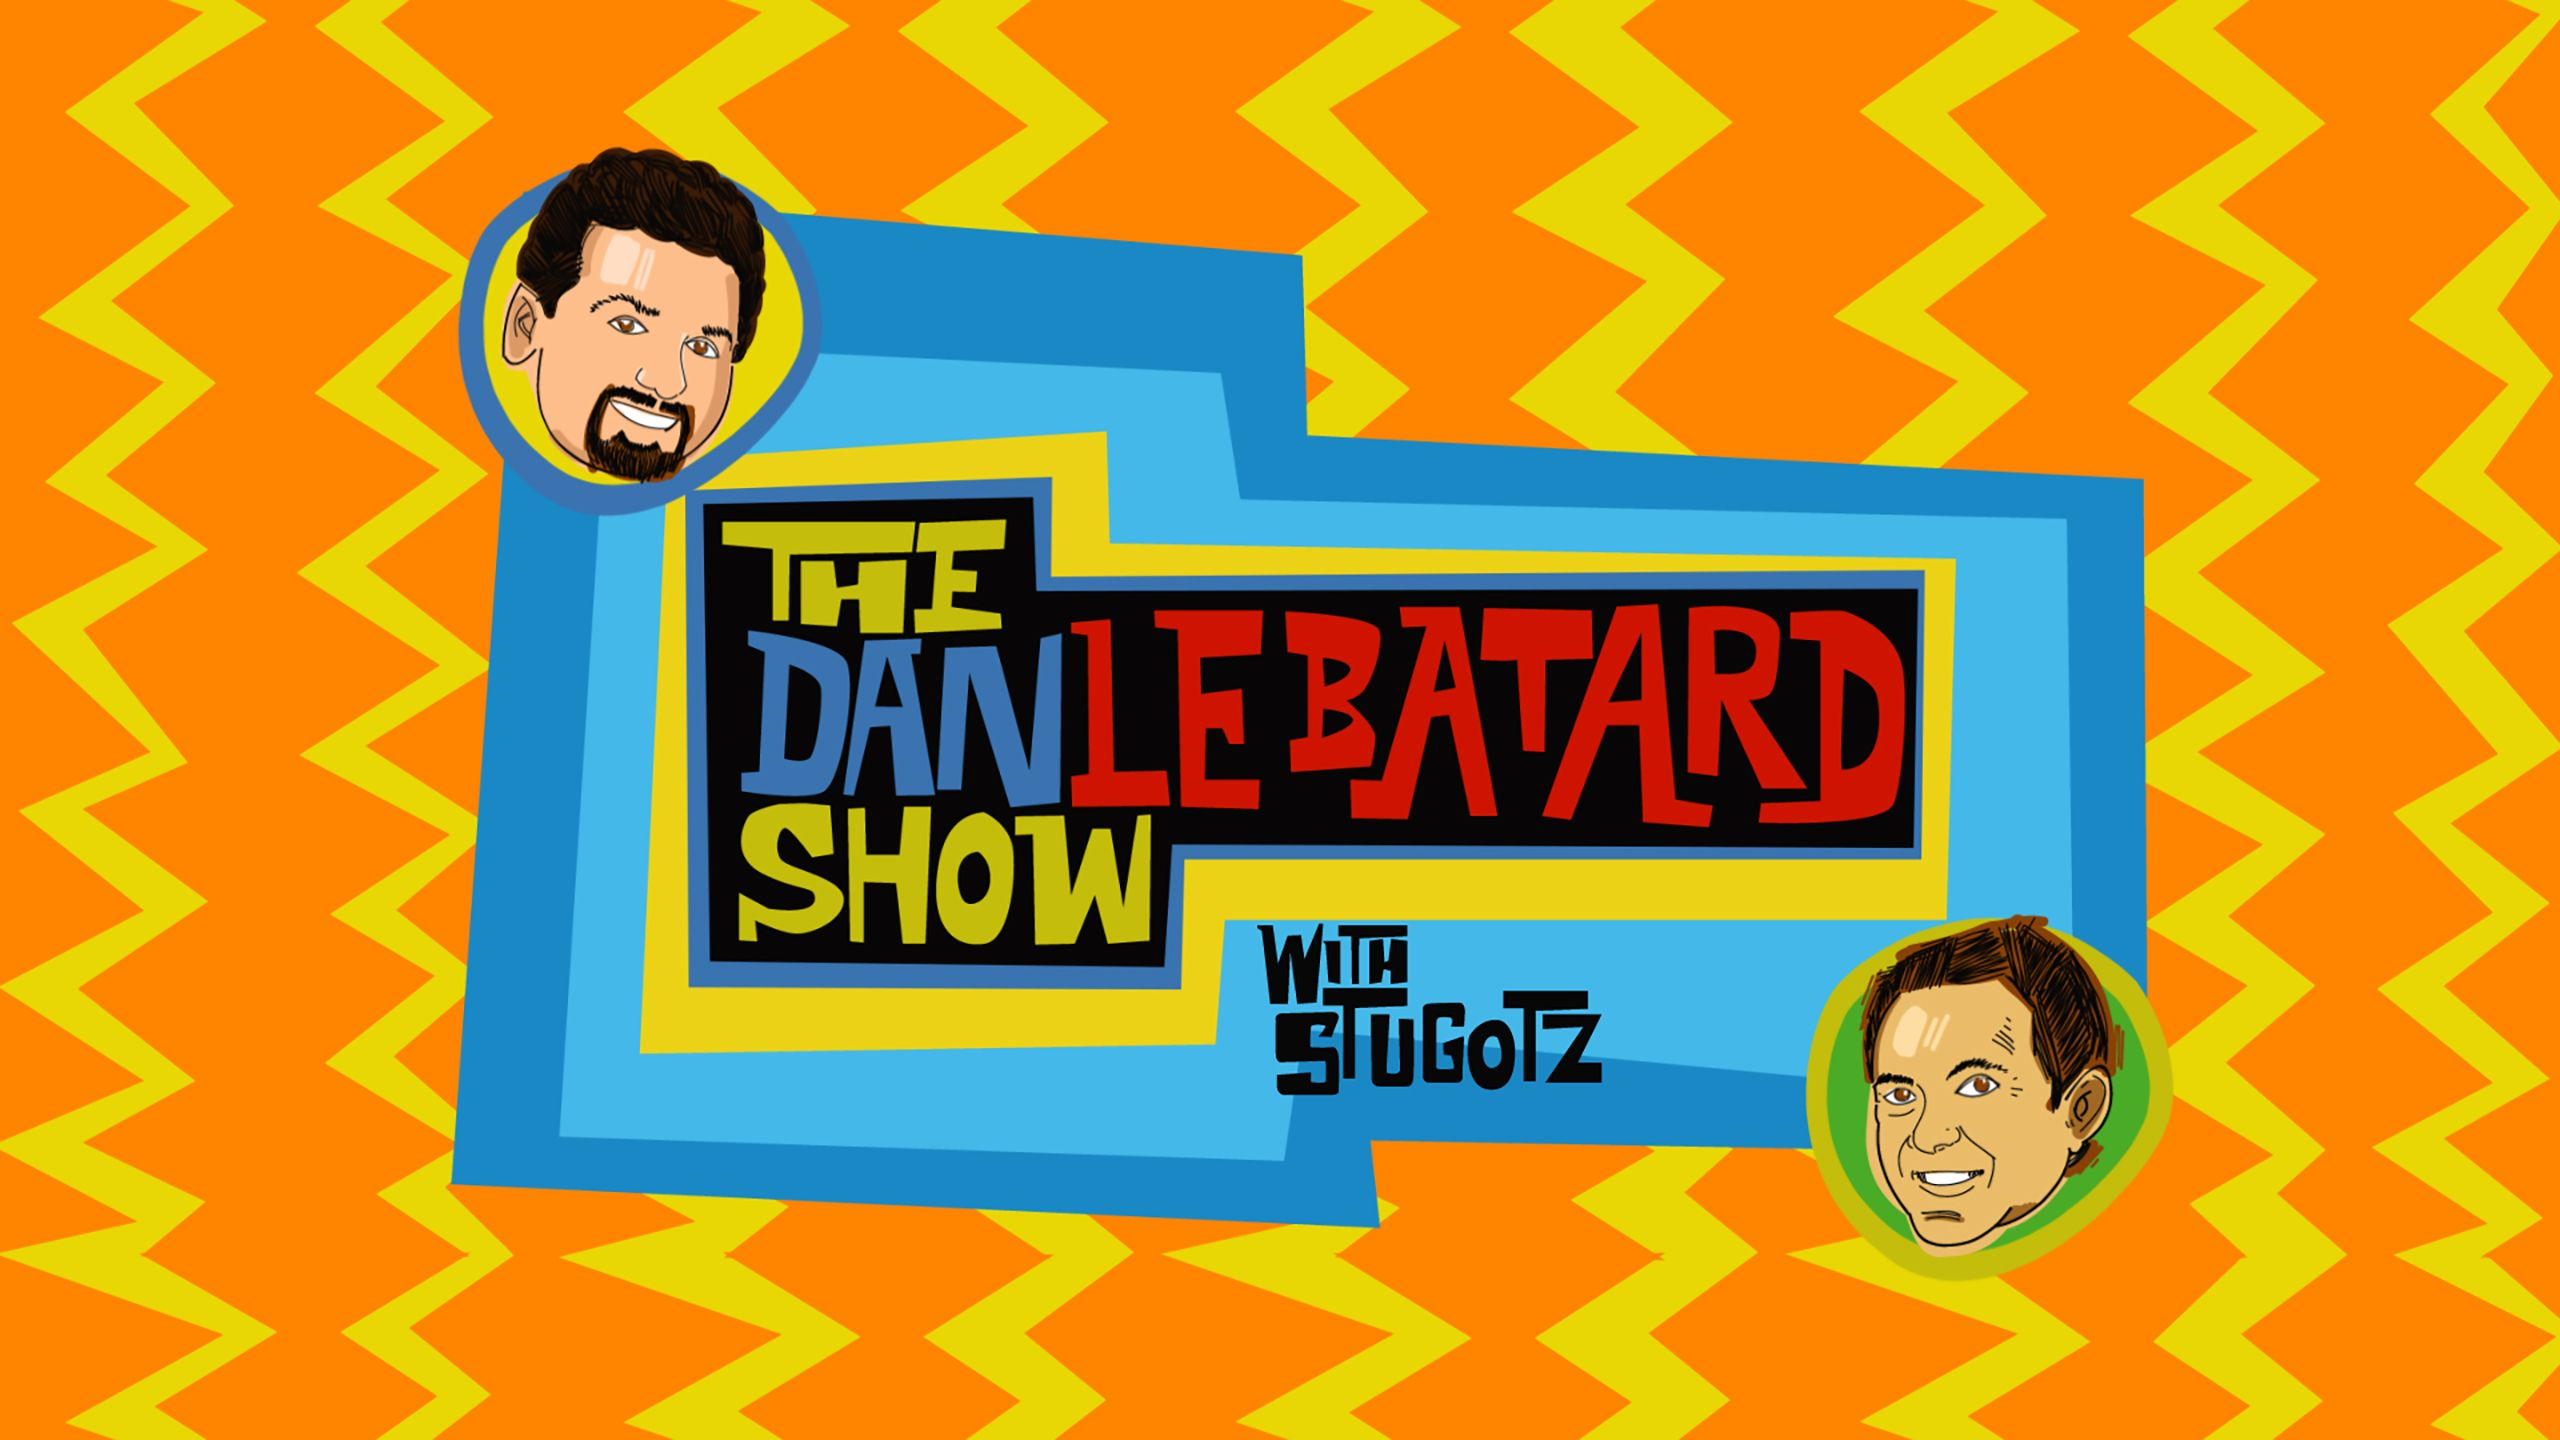 Wed, 12/13 - The Dan Le Batard Show with Stugotz Presented by Progressive